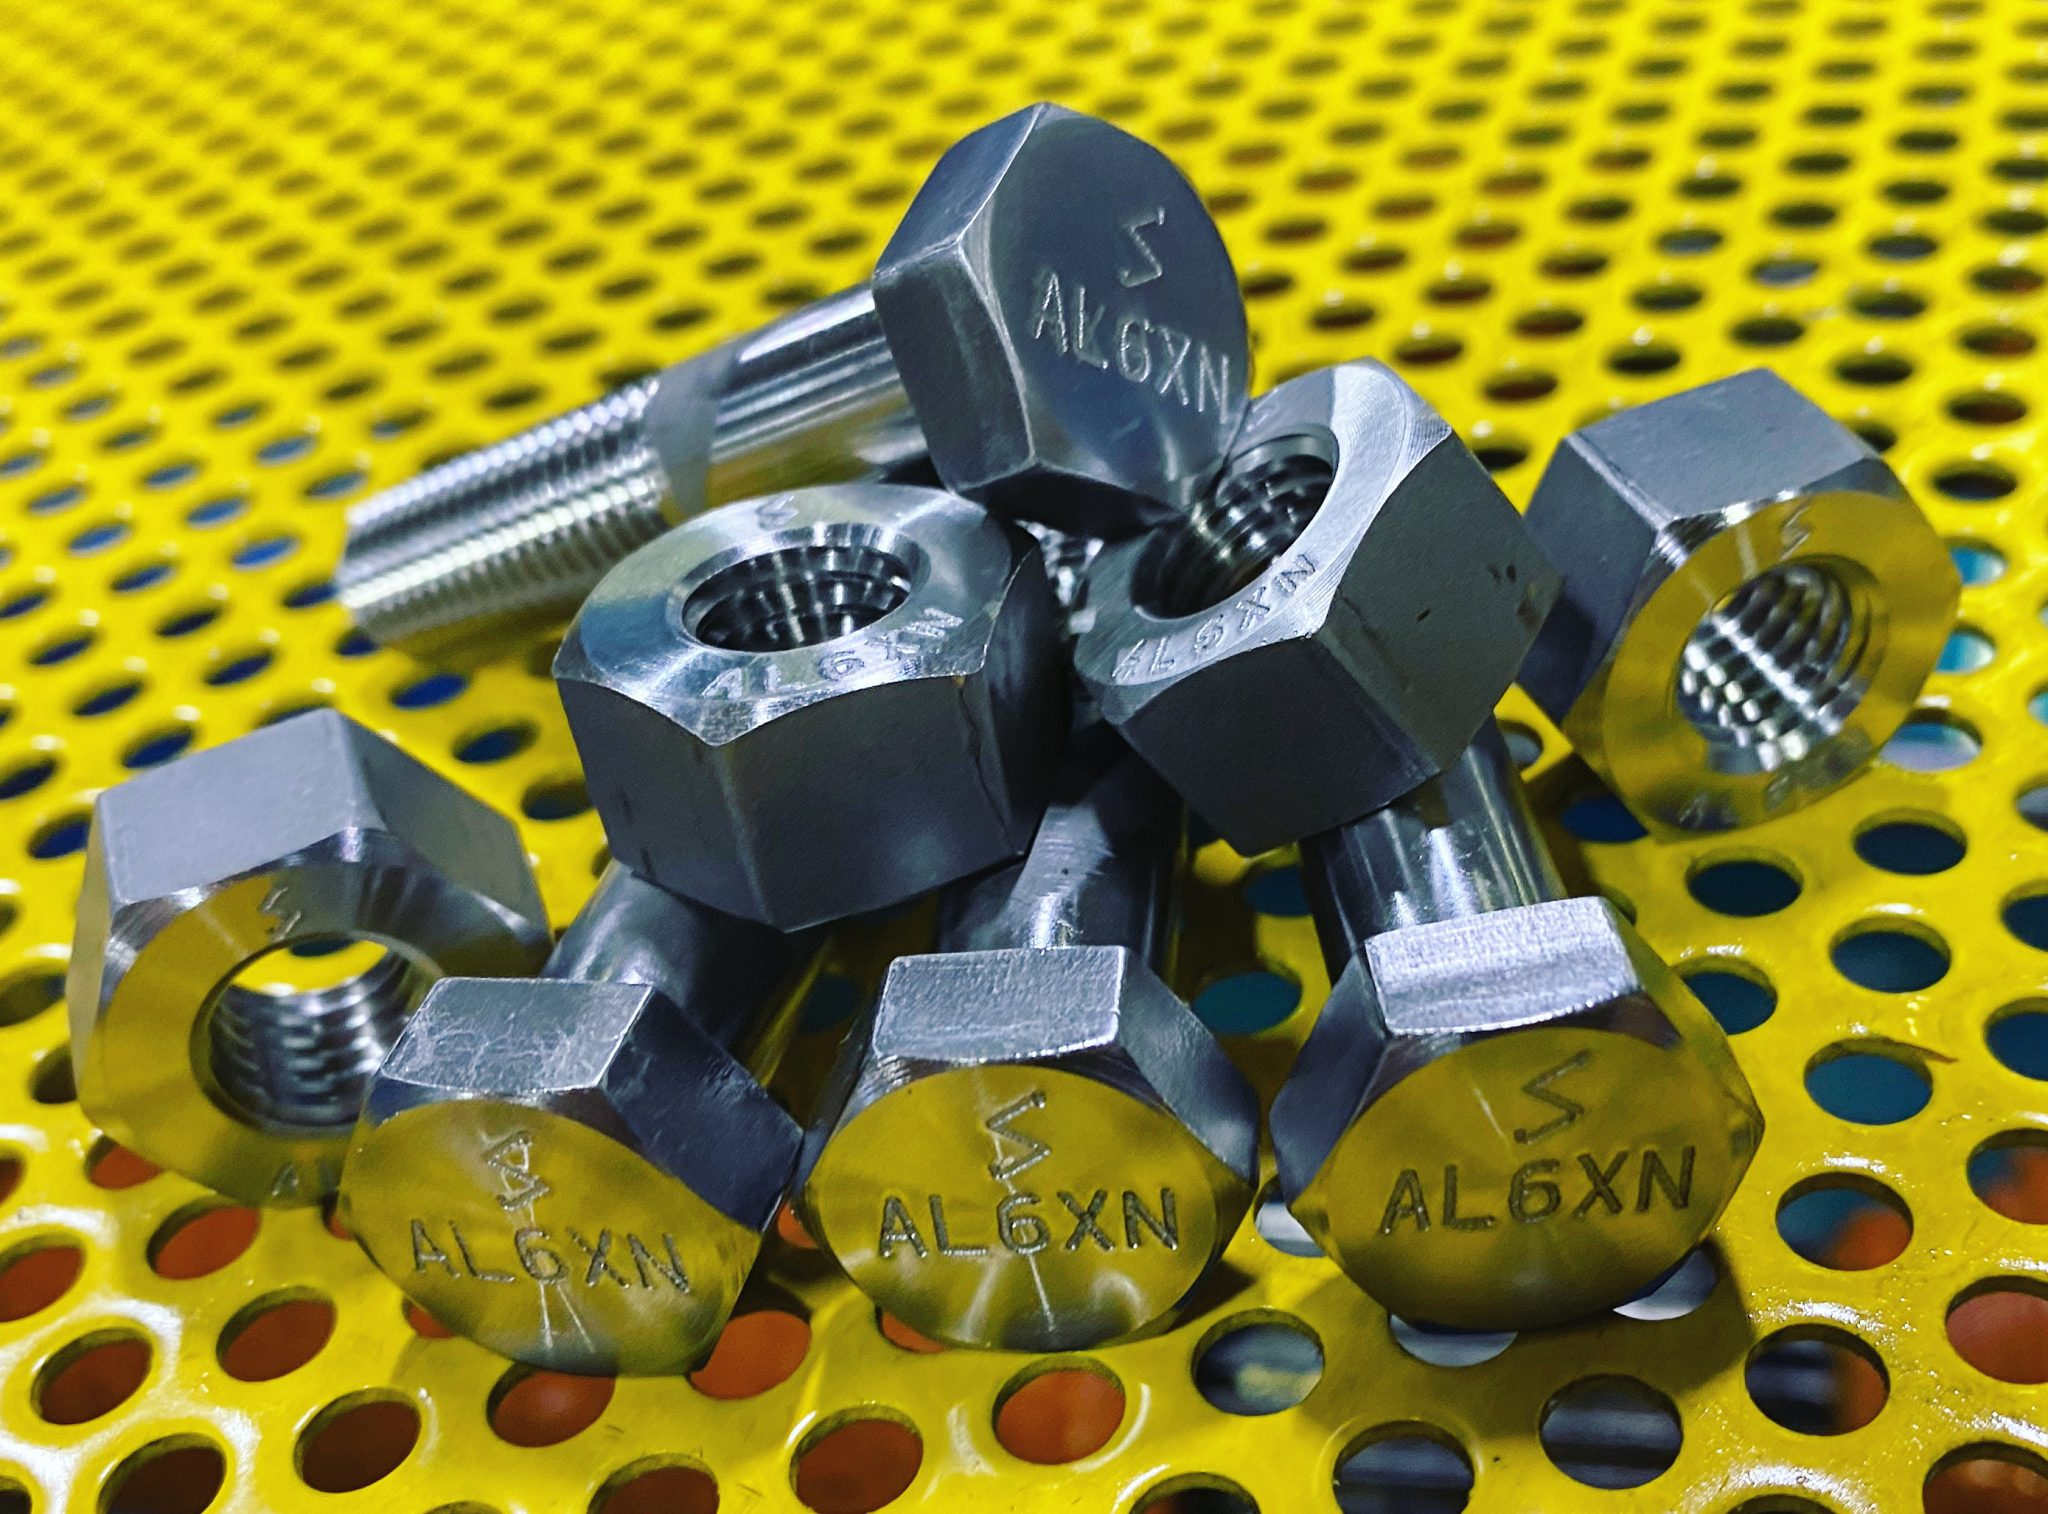 1/2(13) AL6XN Bolts and Nuts